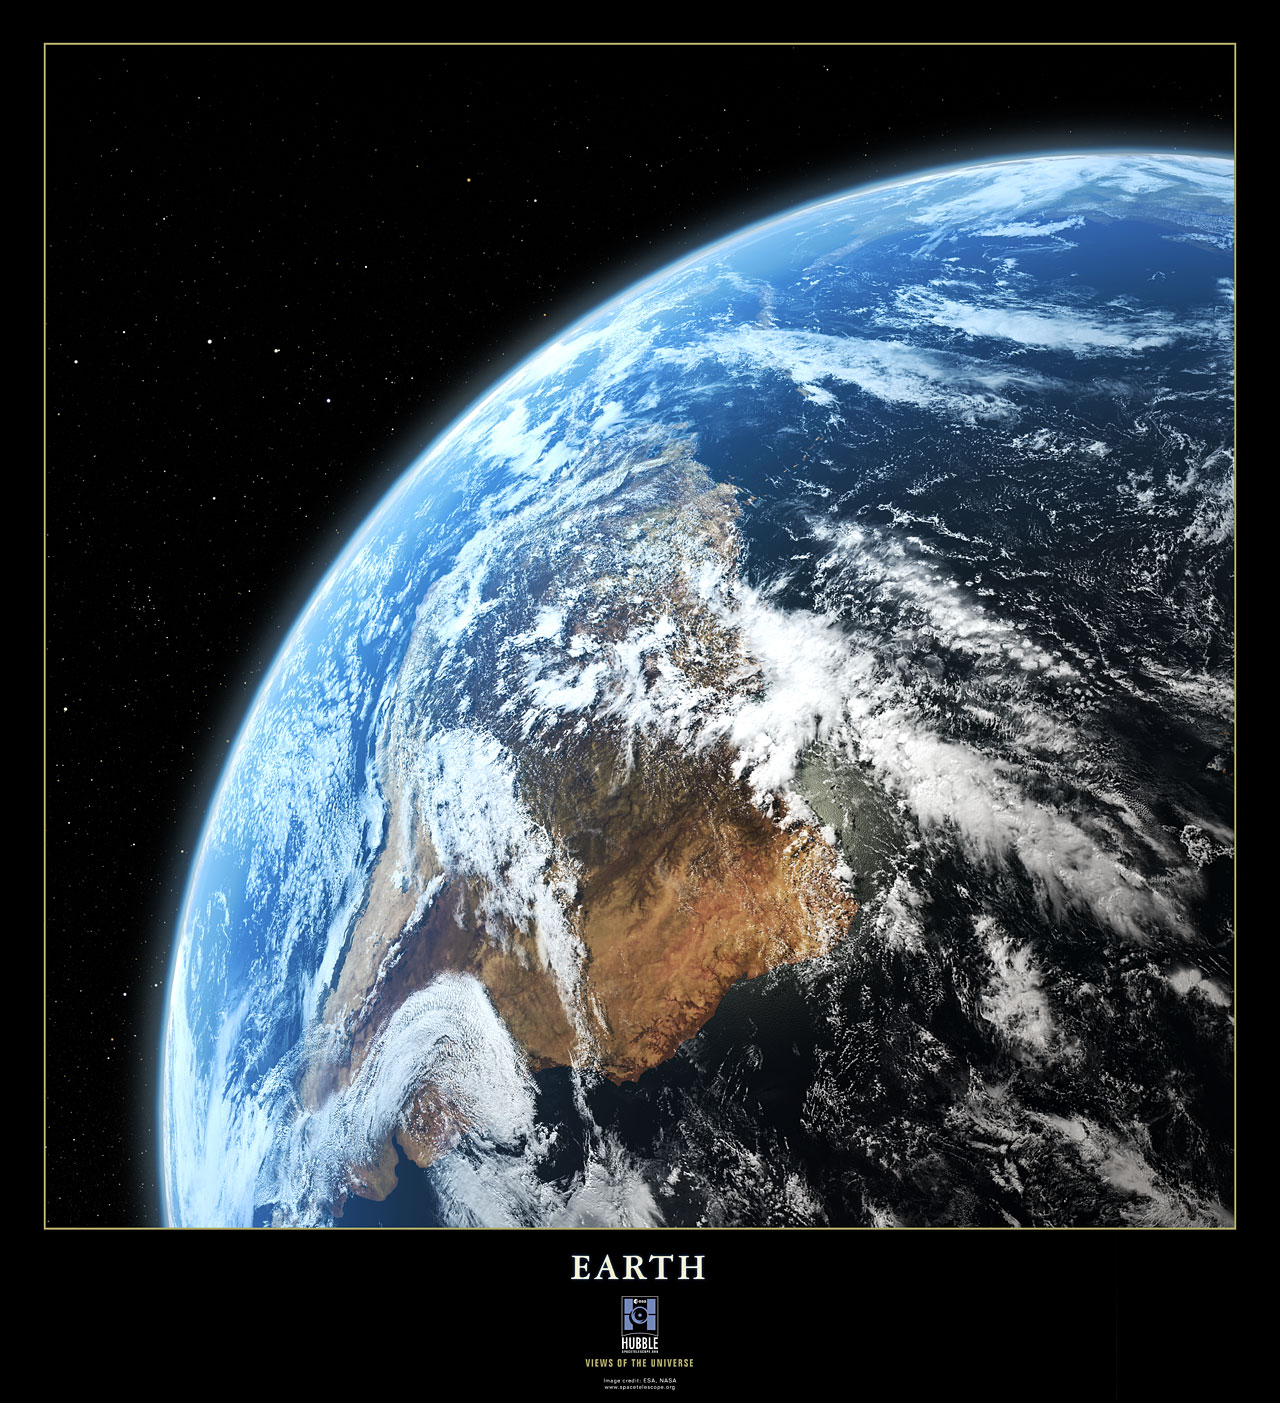 hubble images of earth - photo #5